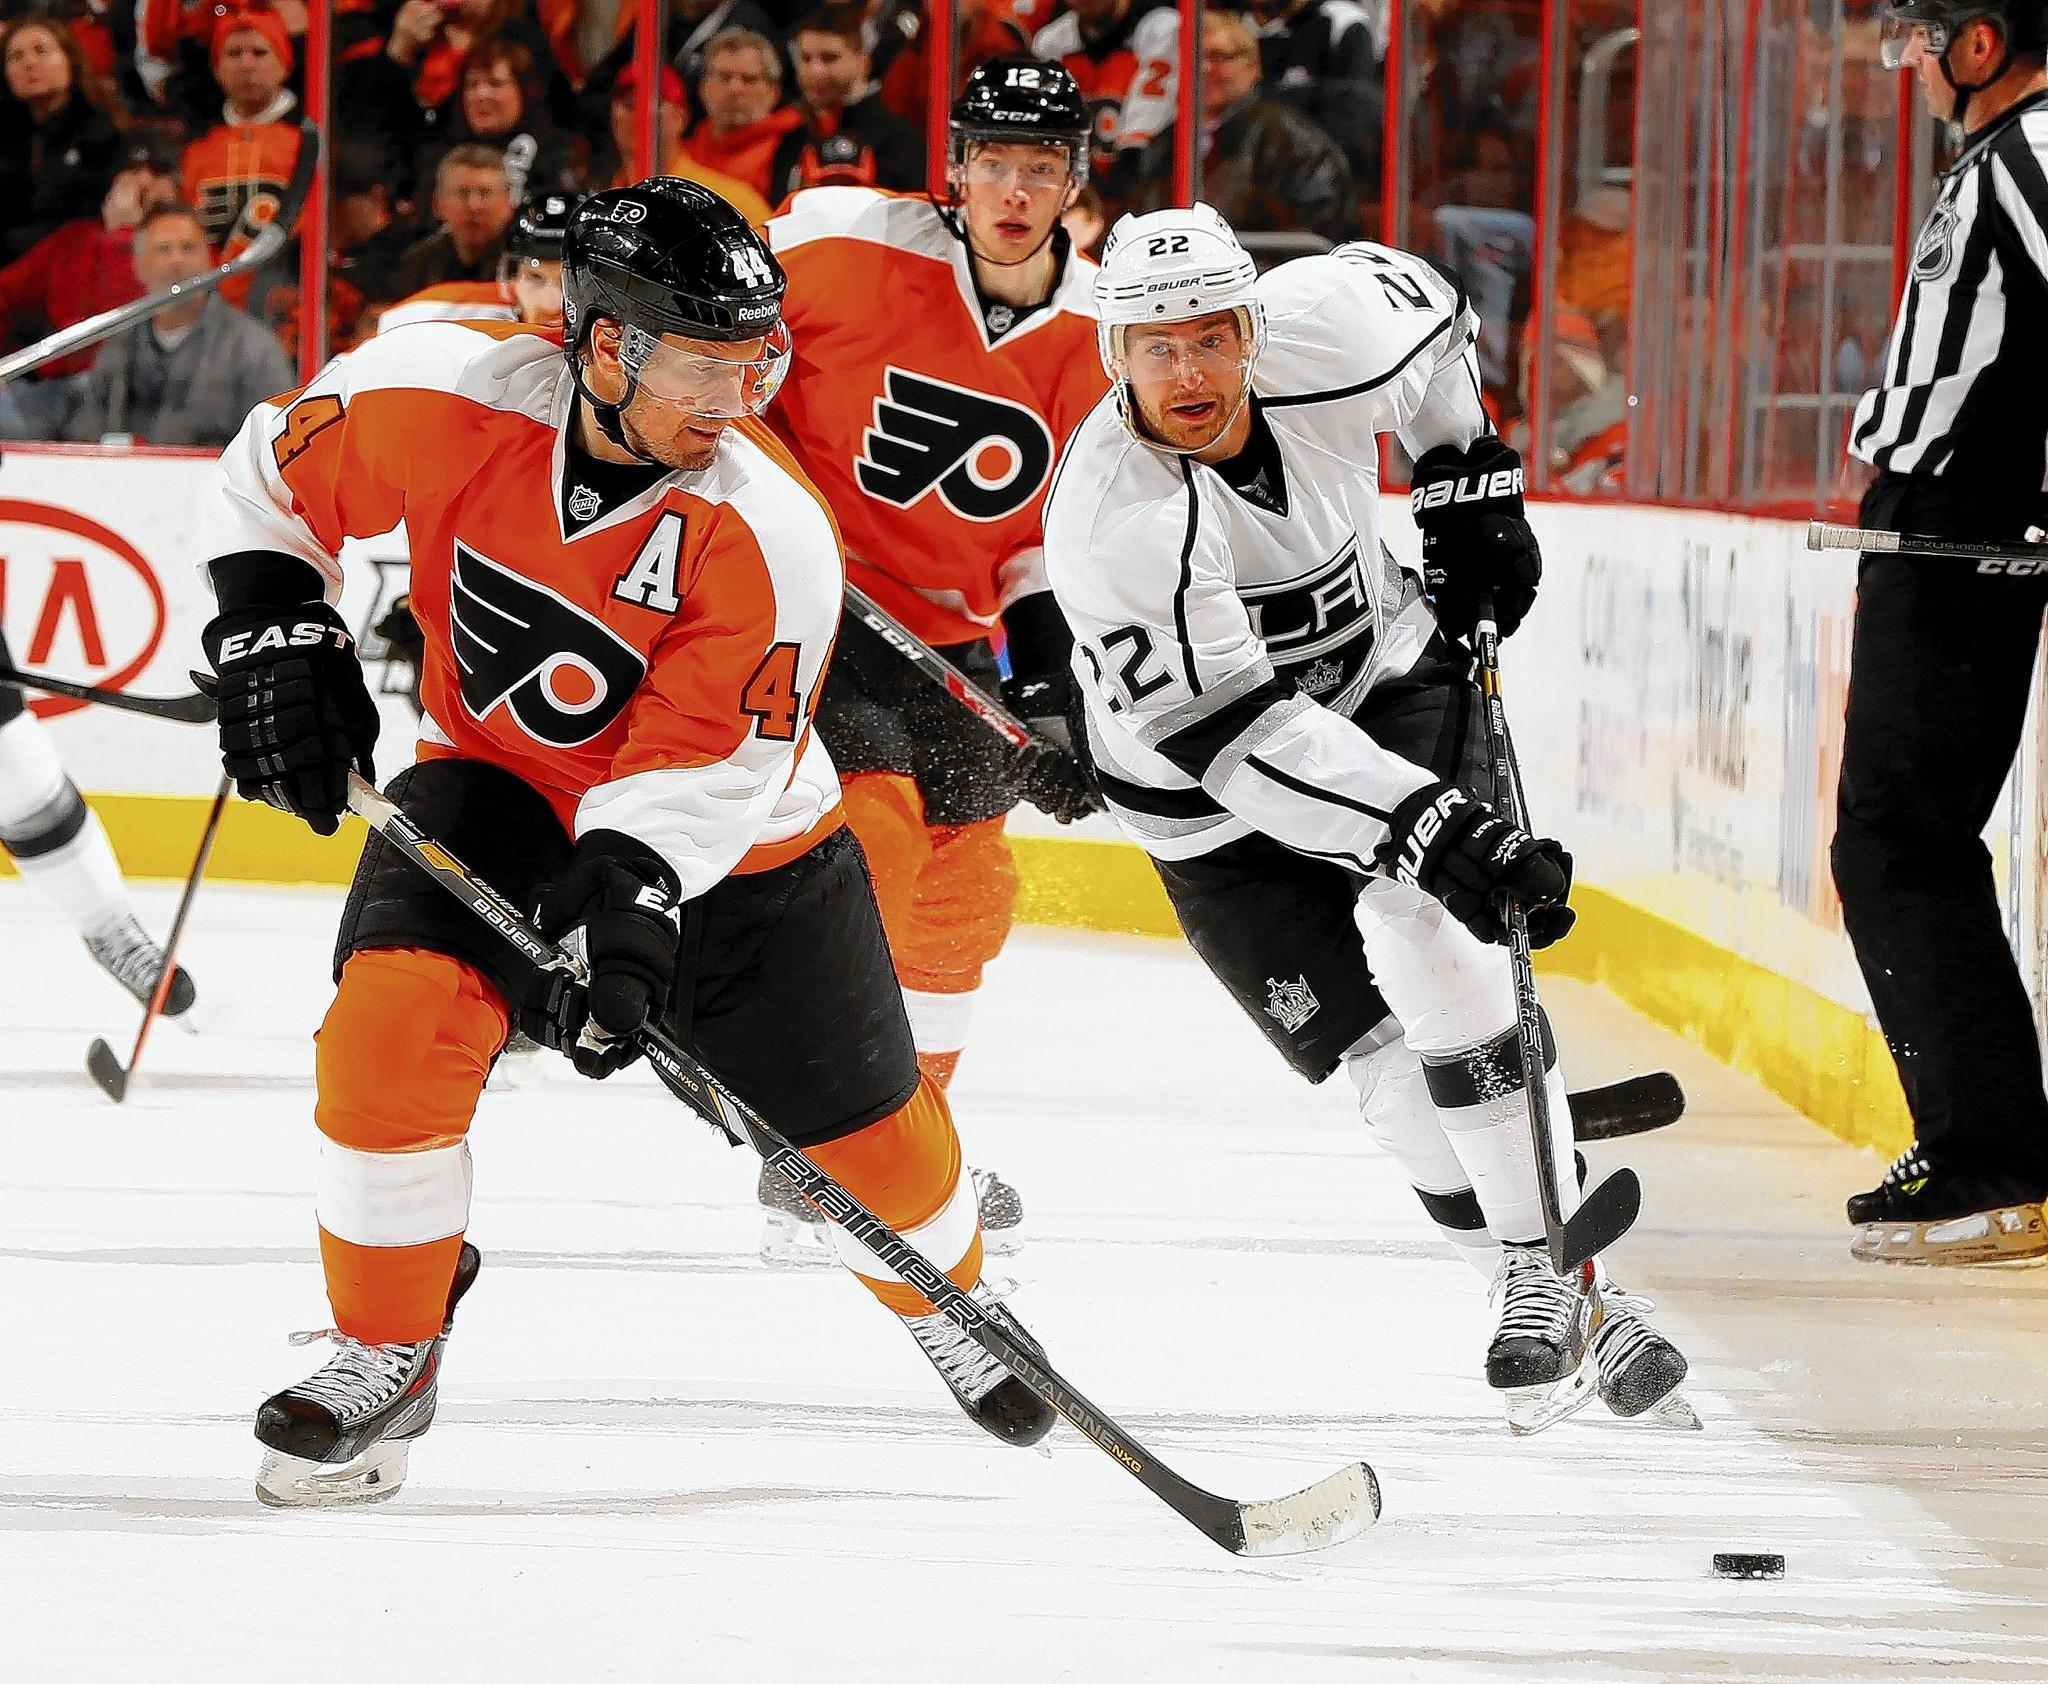 Flyers defenseman Kimmo Timonen is being treated for blood clots in his lungs, the team said Tuesday.